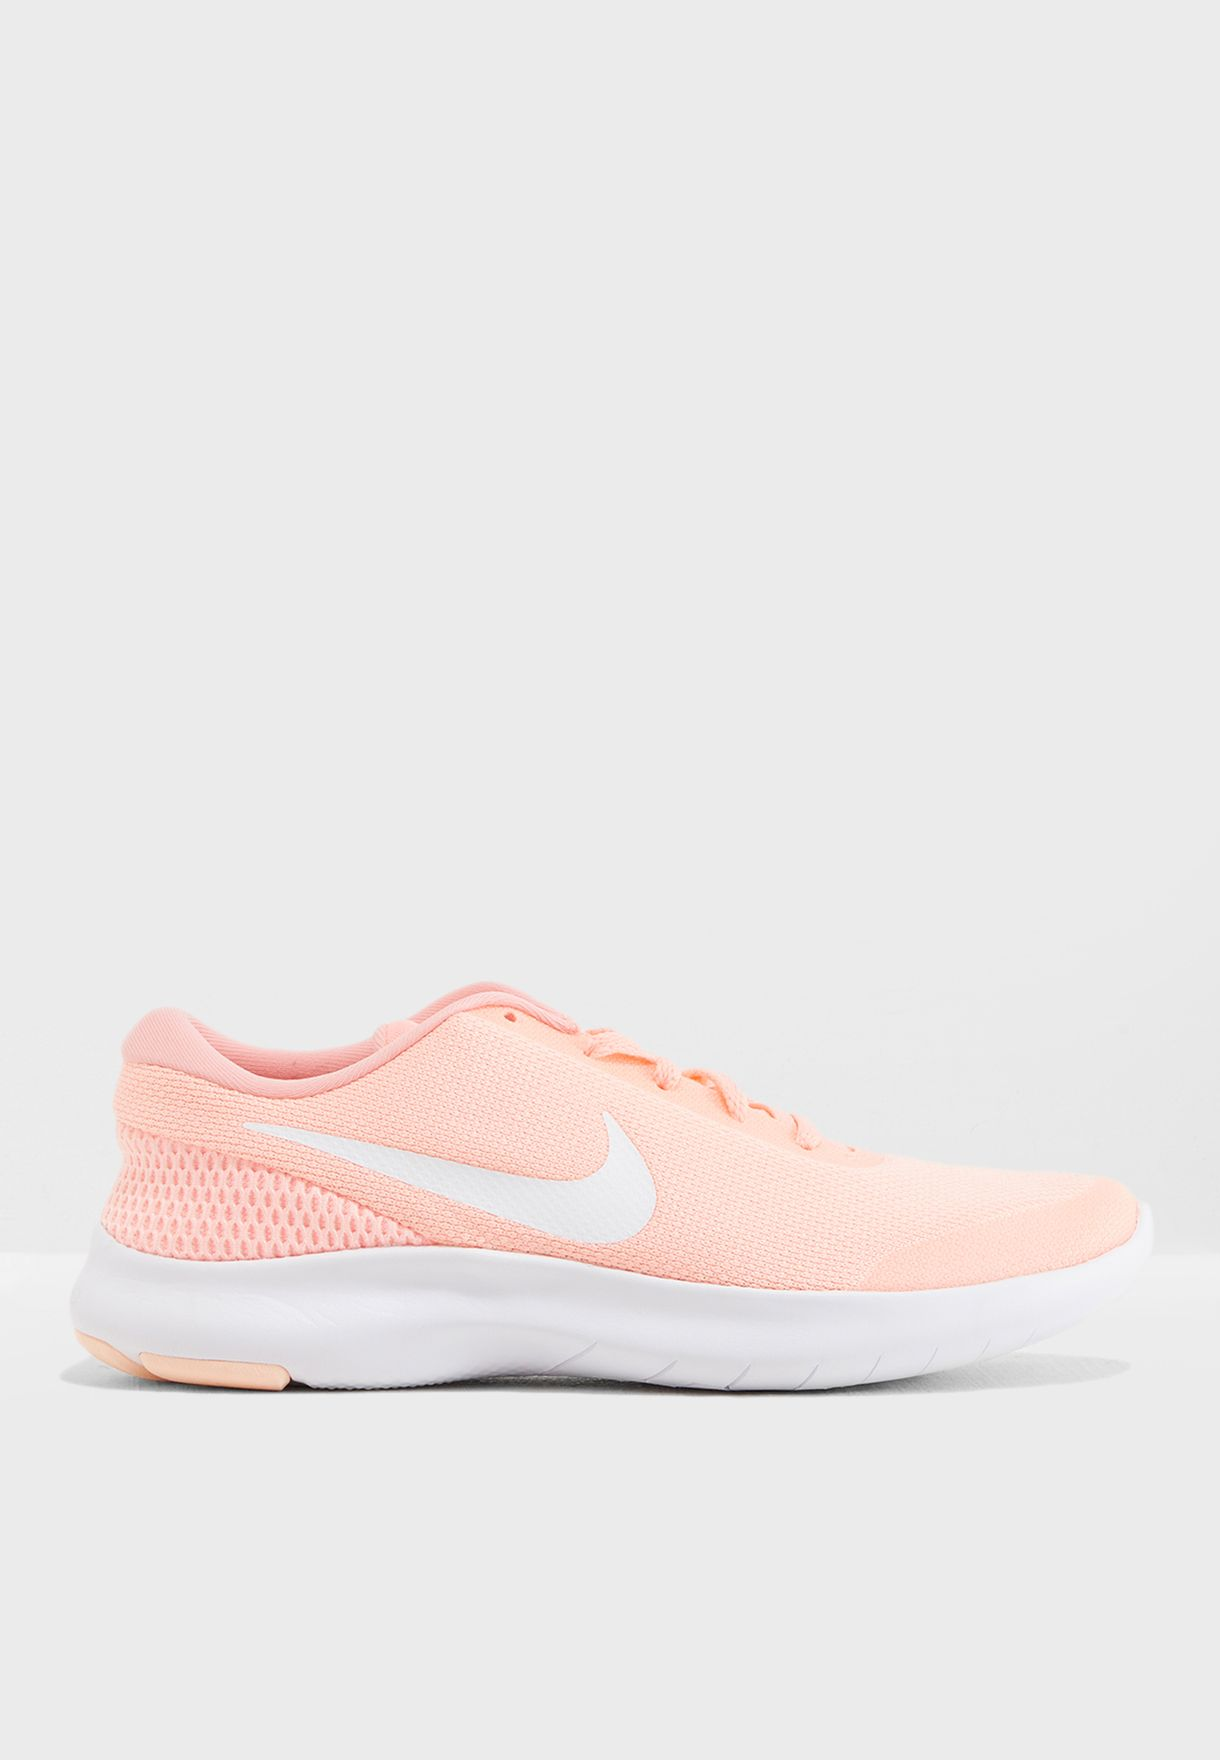 40ca6cf66a40 Shop Nike pink Flex Experience RN 7 908996-601 for Women in UAE ...